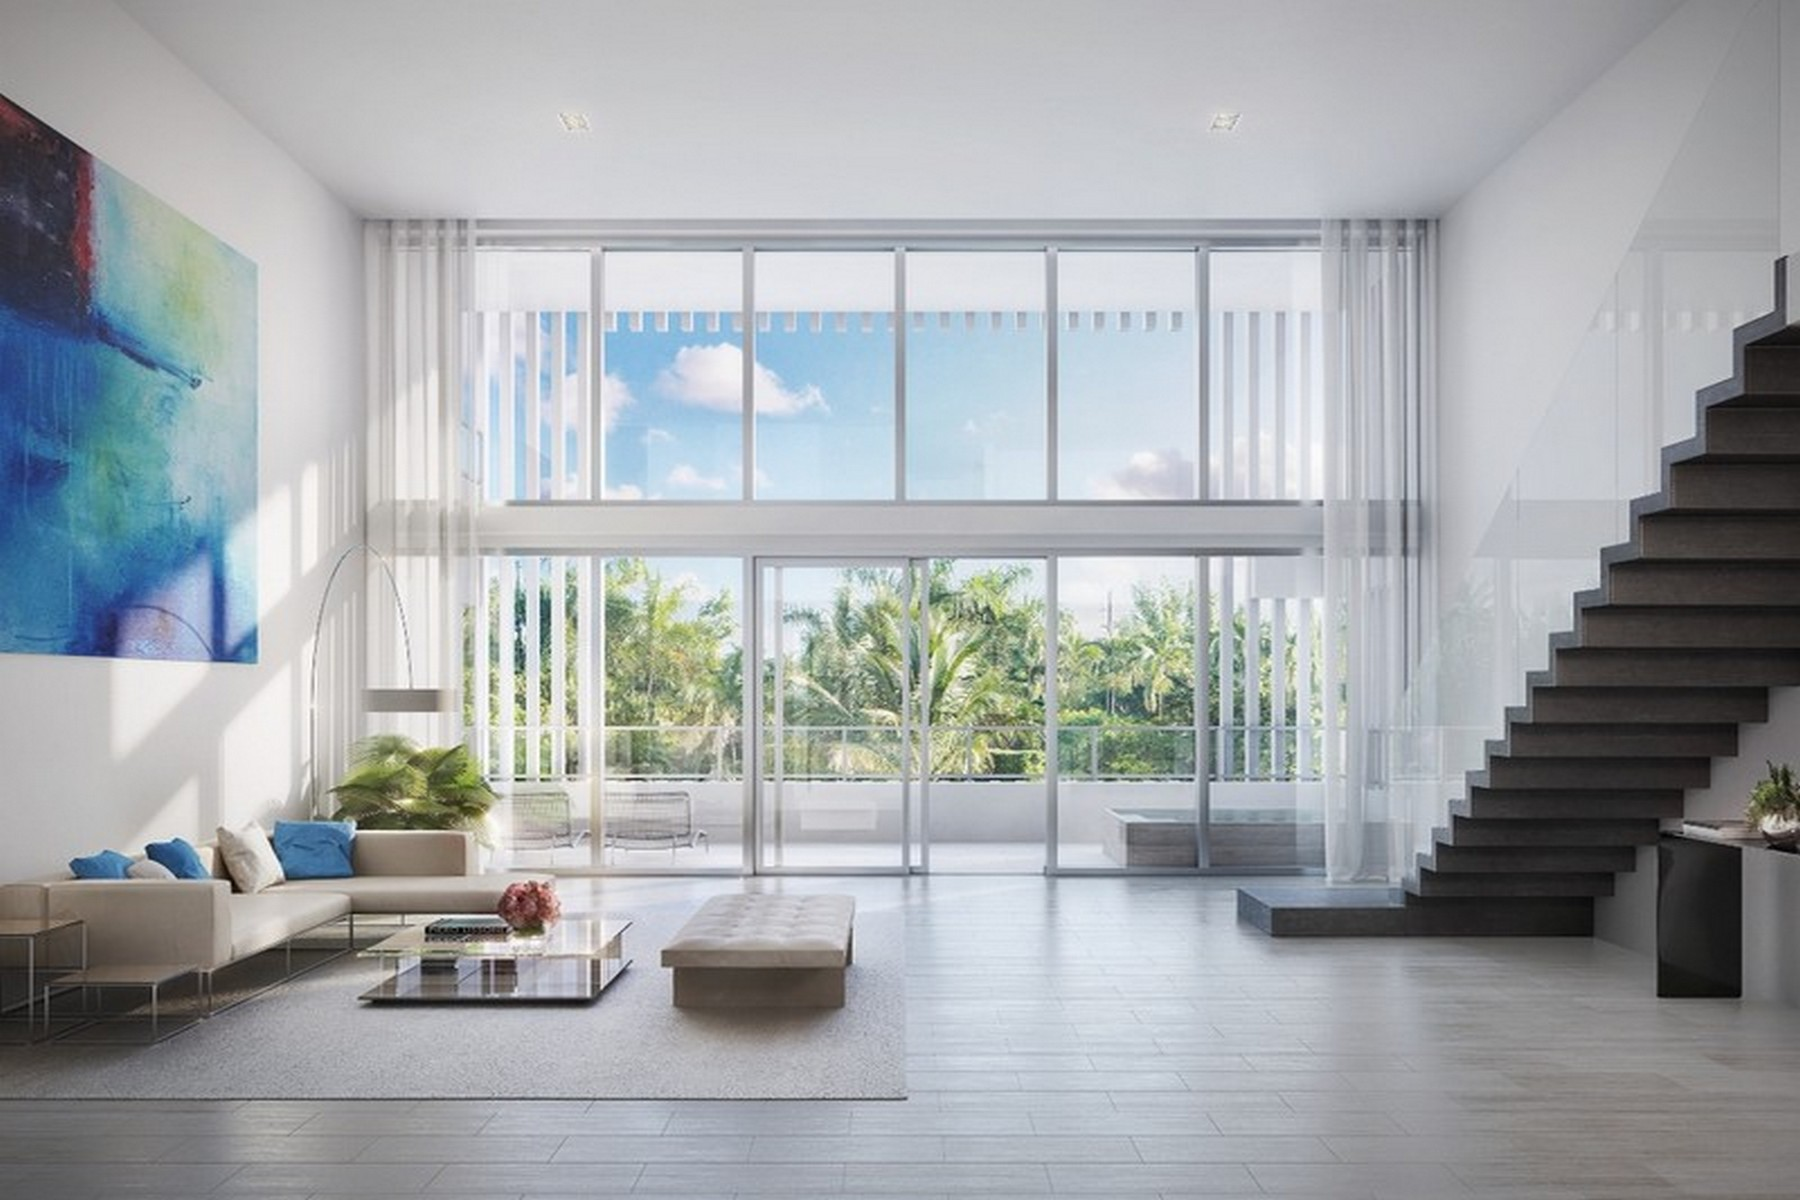 Apartment for Sale at 4701 N Meridian #220 Miami Beach, Florida 33140 United States